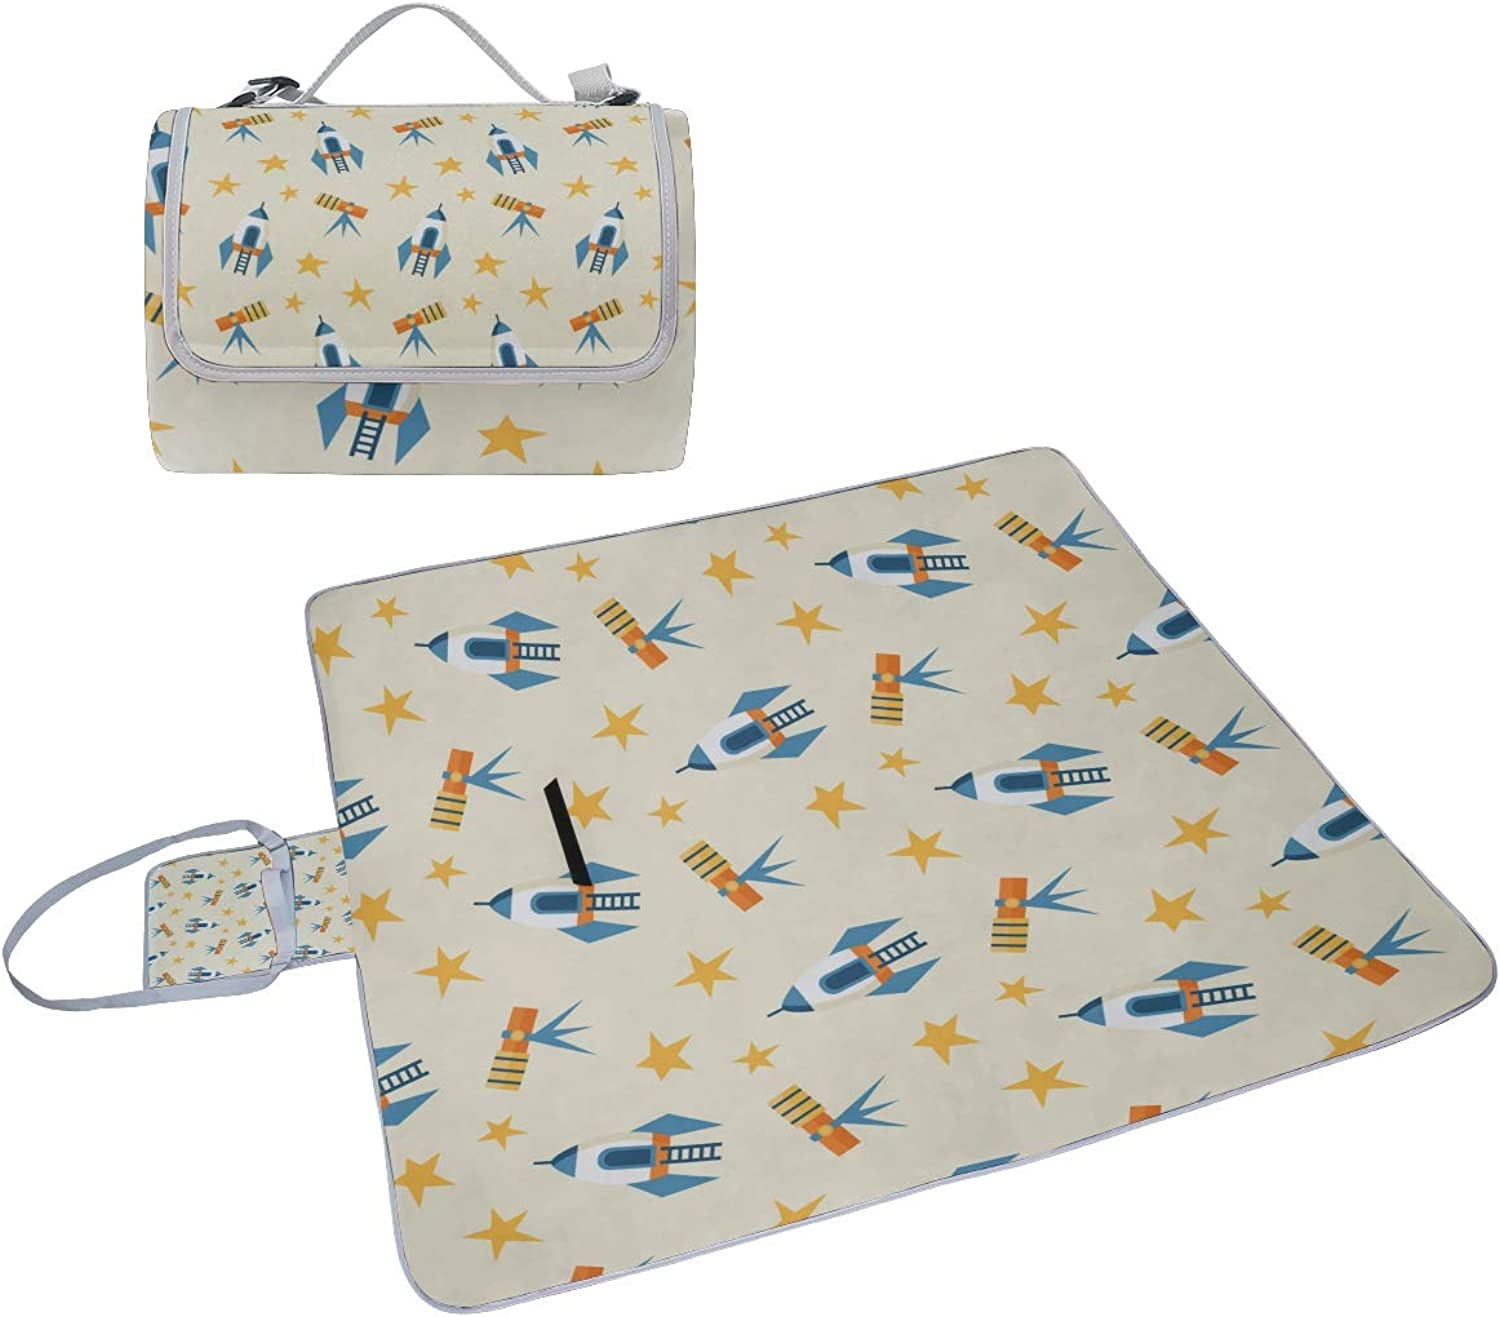 Family Picnic Blanket Handy Tote Telescope Astronomy Starry Sky Art Single Side Printing Foldable Sandproof Waterproof Camping Mat for Outdoor Beach Hiking Grass Travel Outings